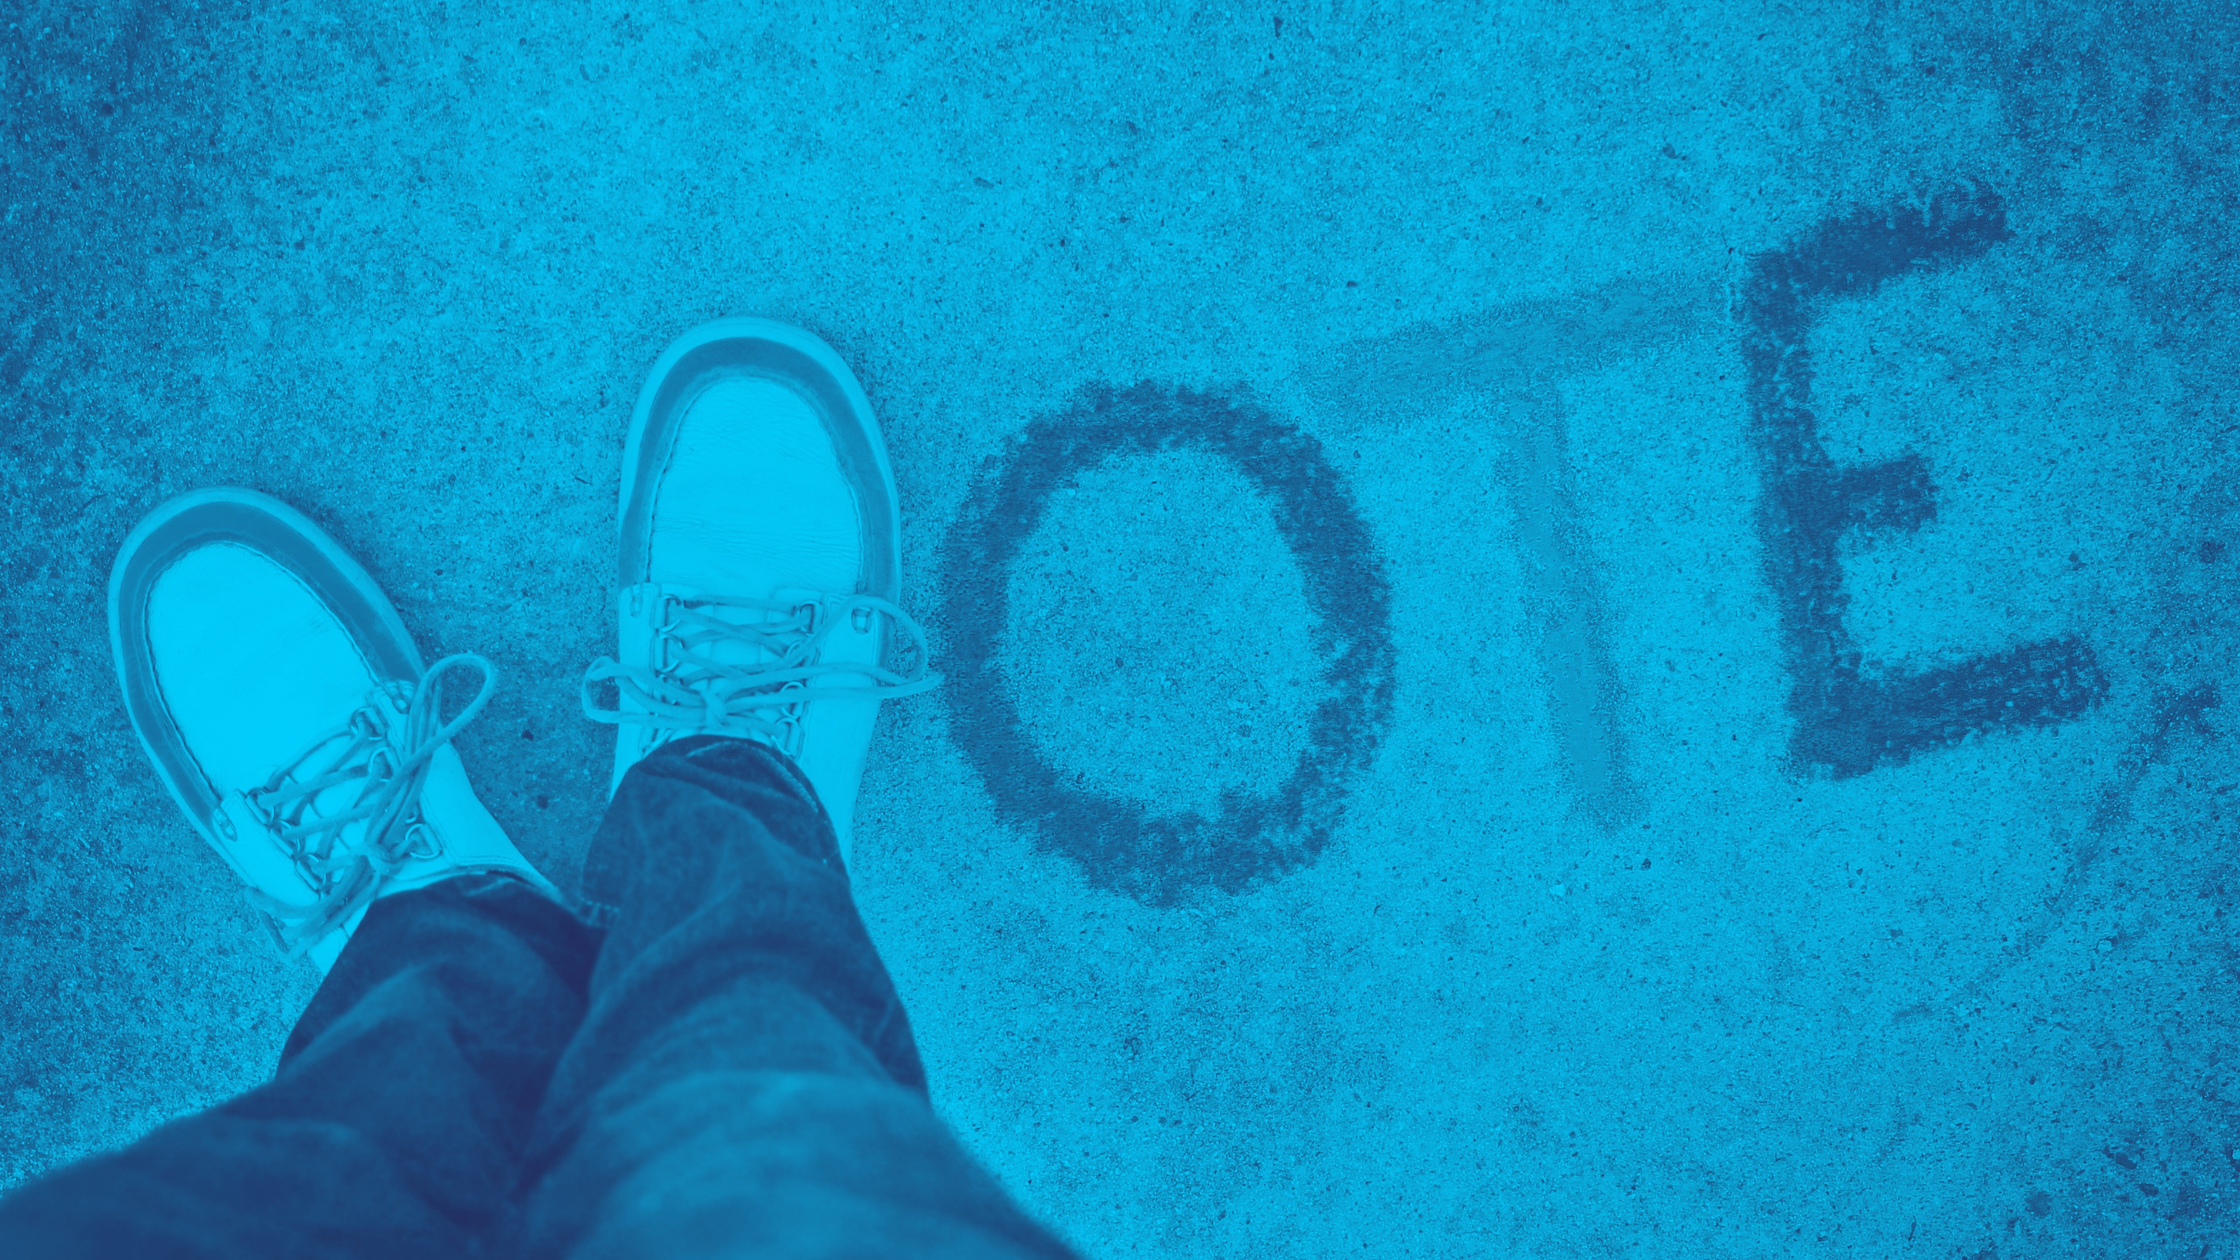 [WATCH] Follow the Money - Political Advertising in 2020